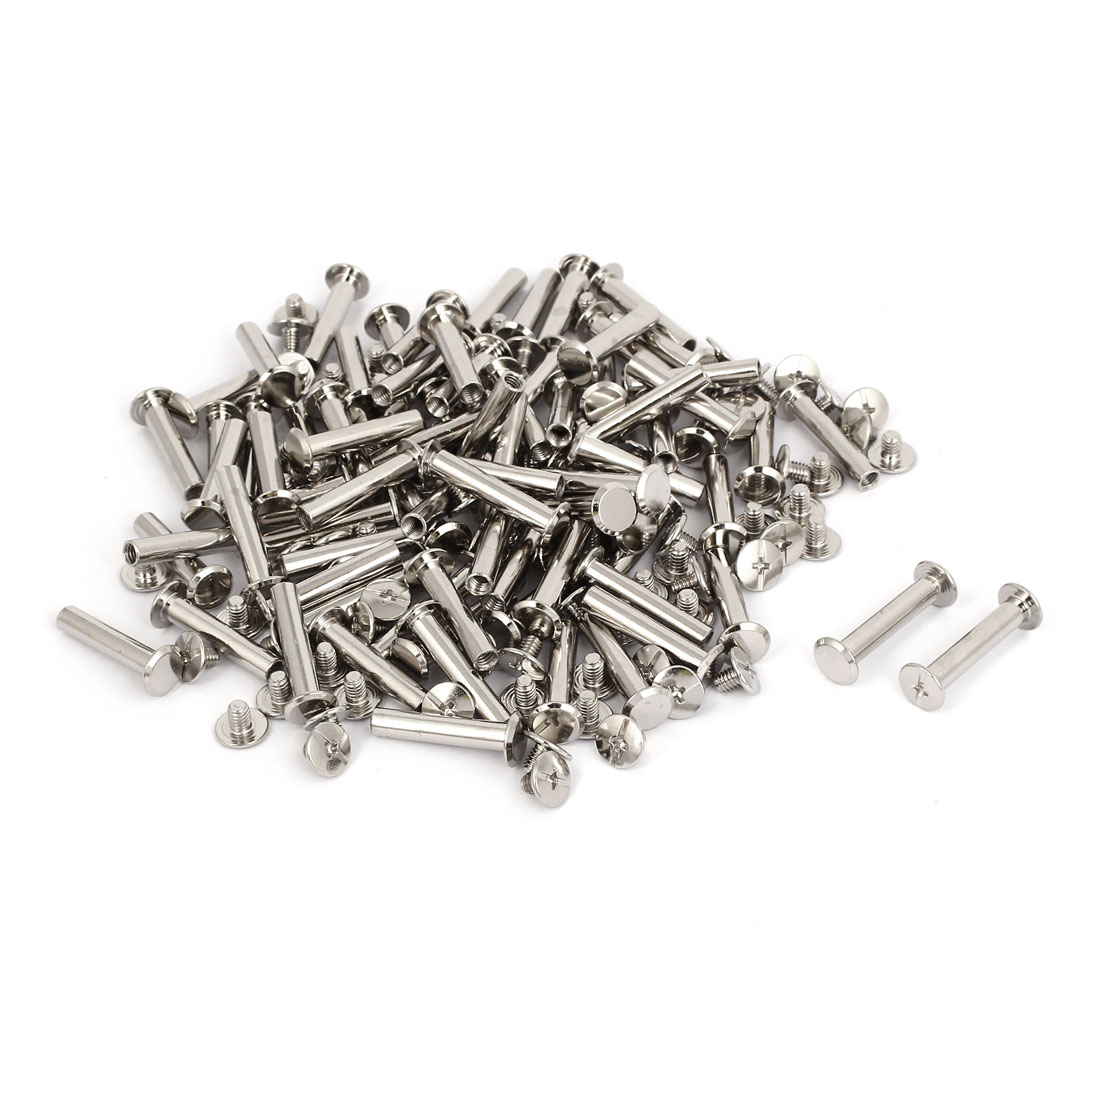 M5x25mm Binding Chicago Screw Post 100pcs for Photo Albums Scrapbook